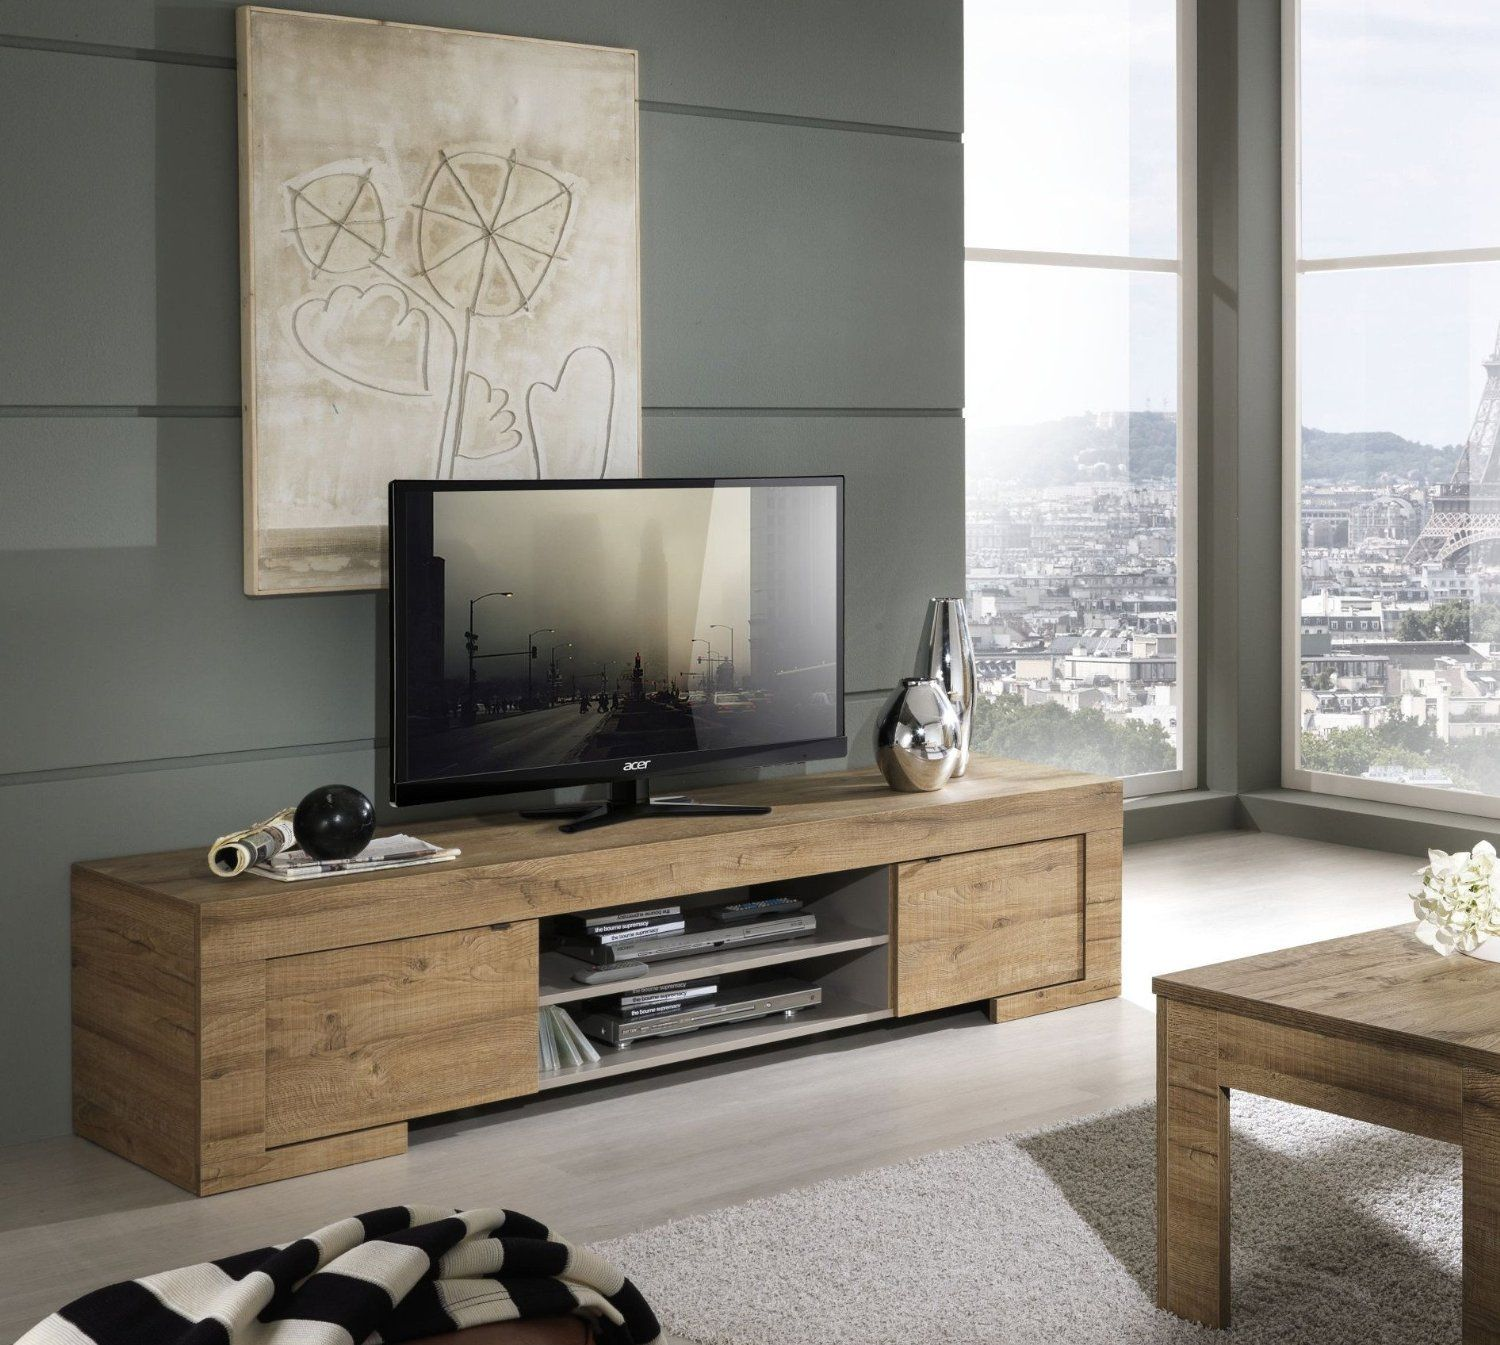 Mobili Su Amazon Porta Tv In Laminato Rovere Miele Amazon It Casa E